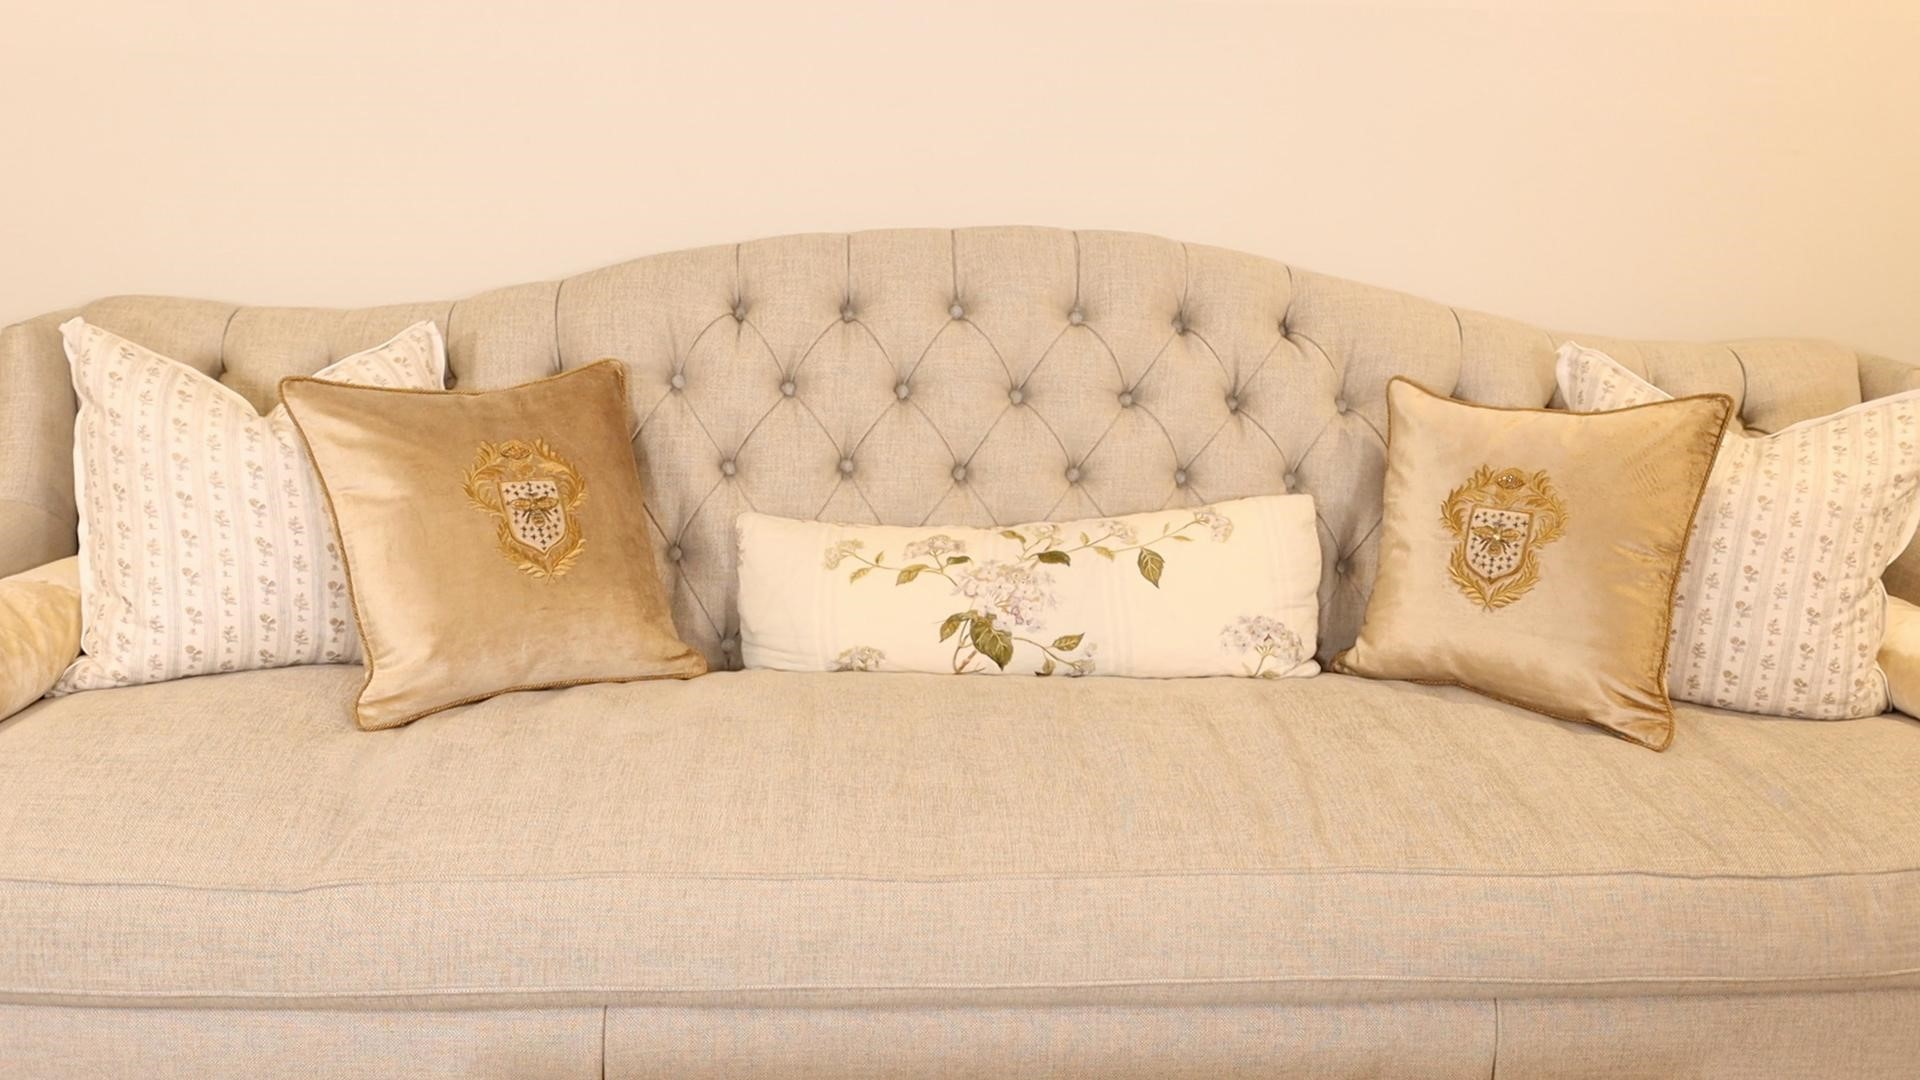 Add comfort and glam with luxurious french country decor embroidered velvet throw pillows.